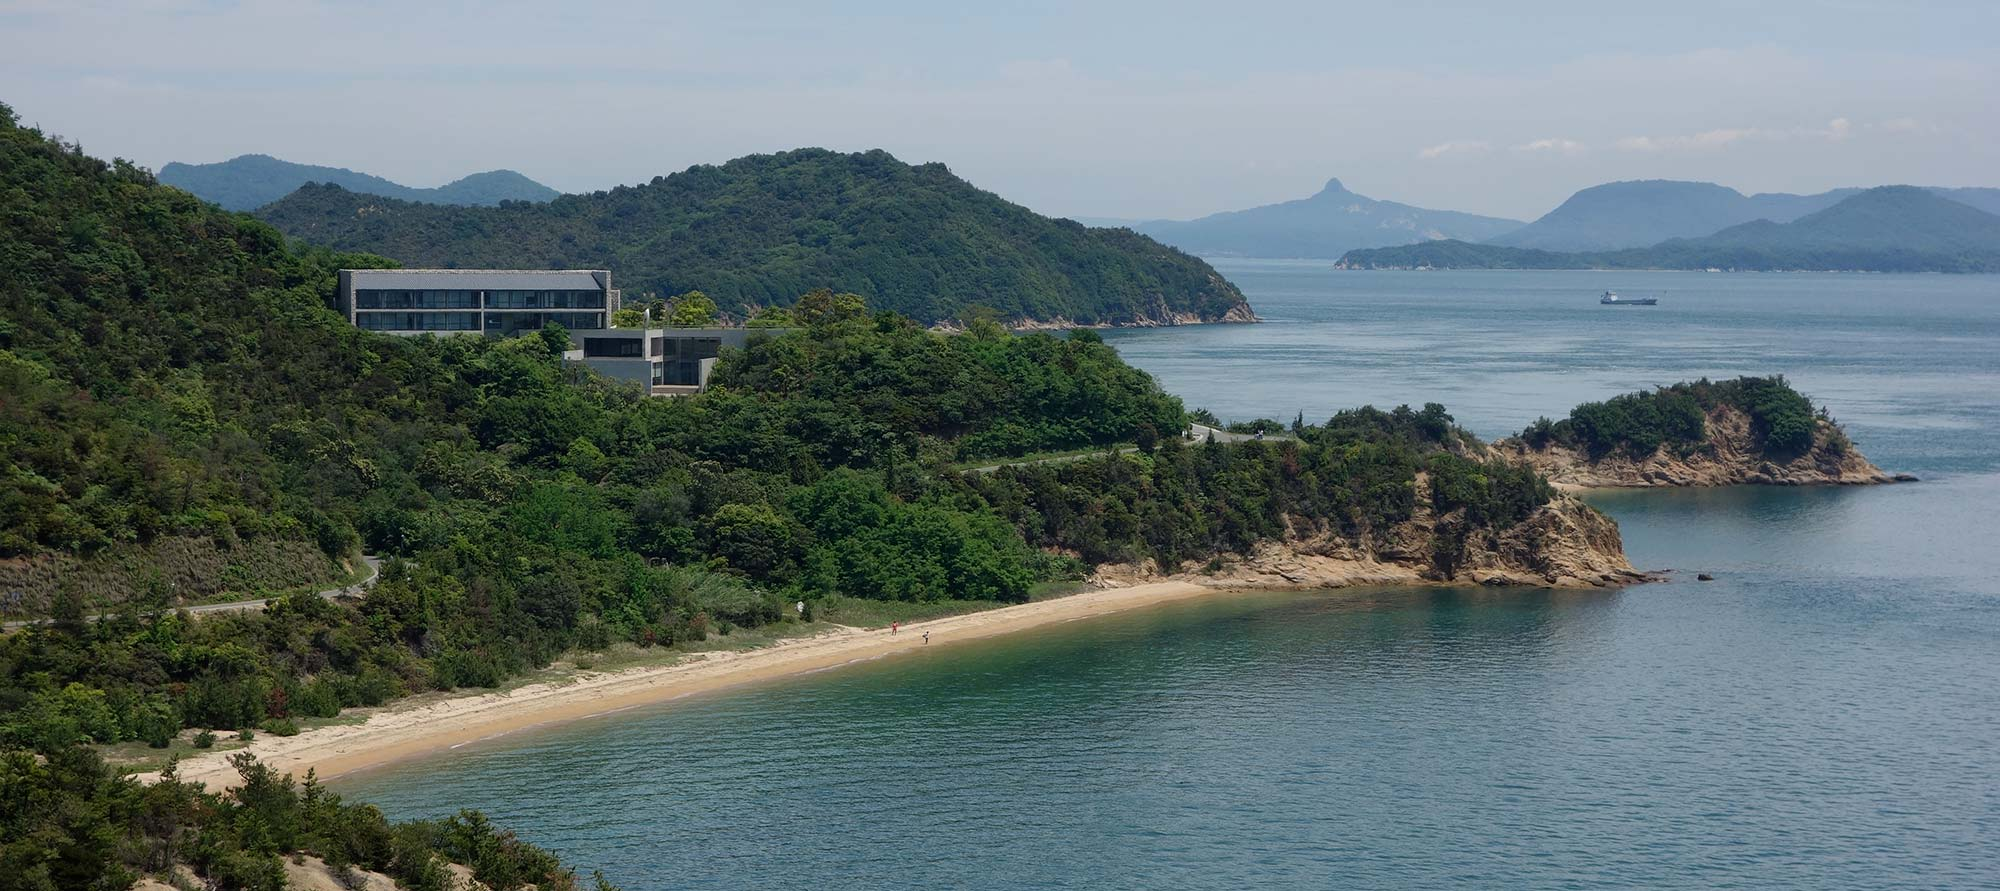 Naoshima – Japan's Surreal Art Island